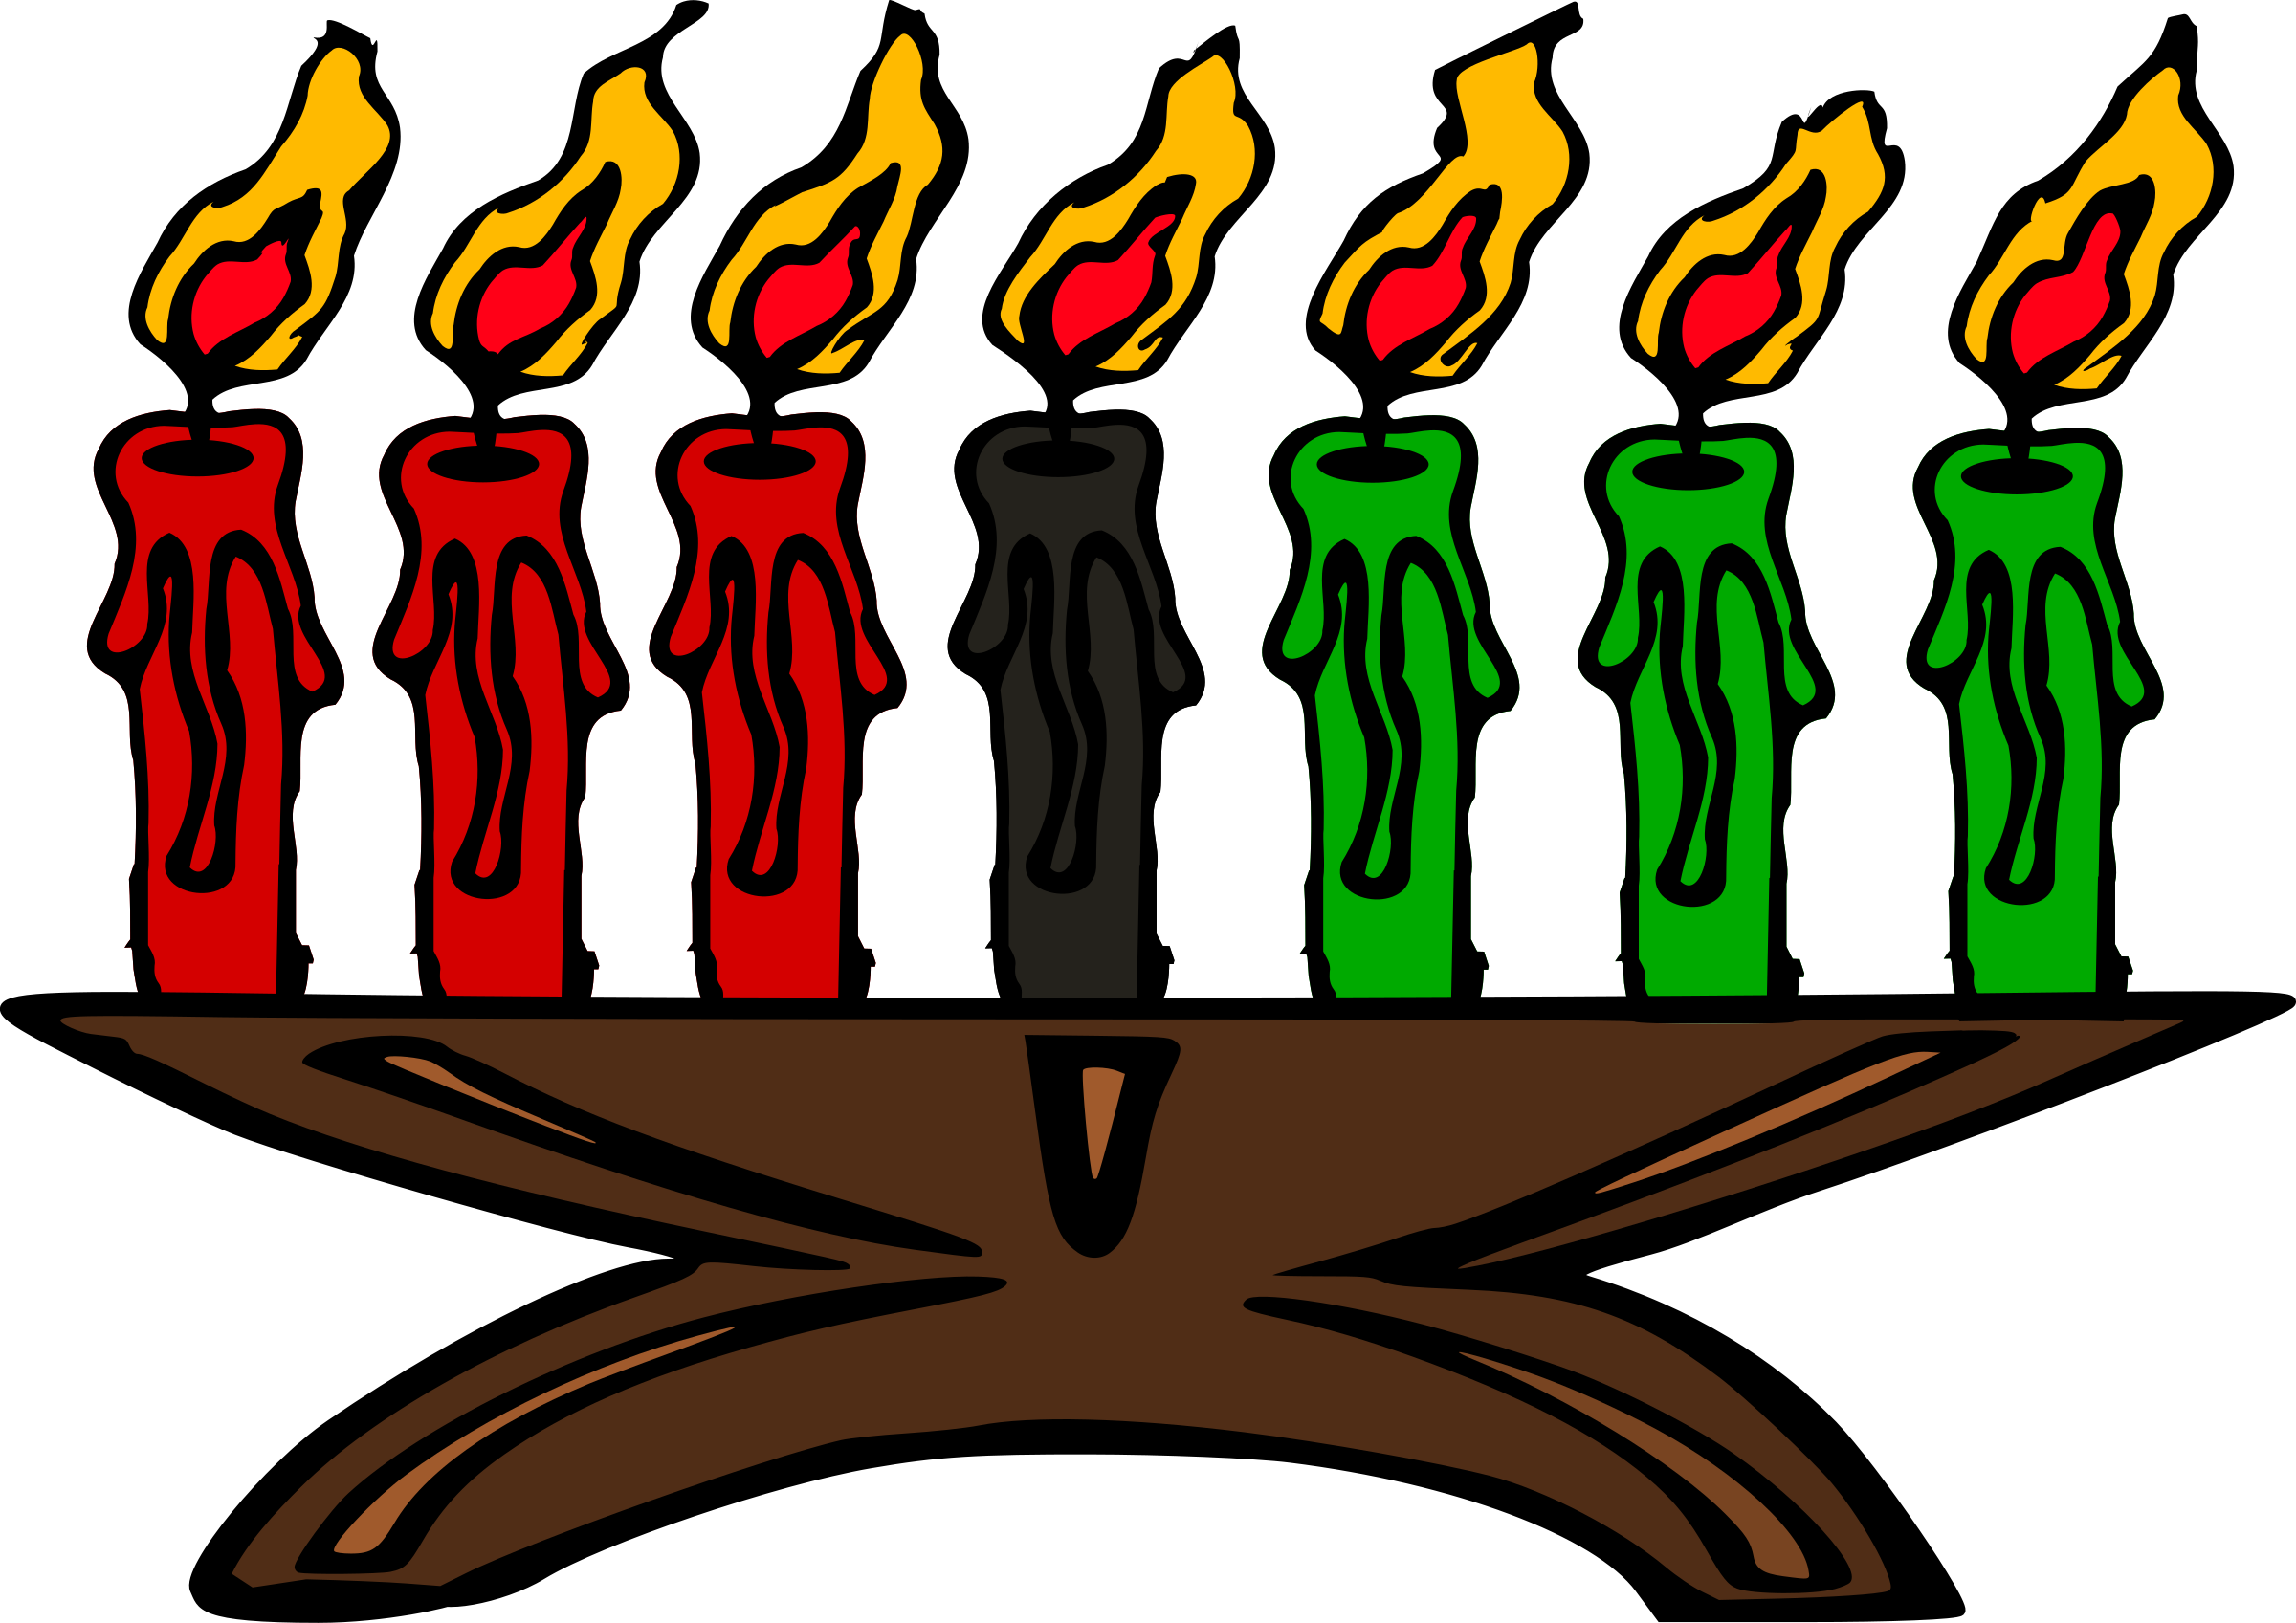 Kwanzaa Kinara (Kwanzaa Candles) by j4p4n